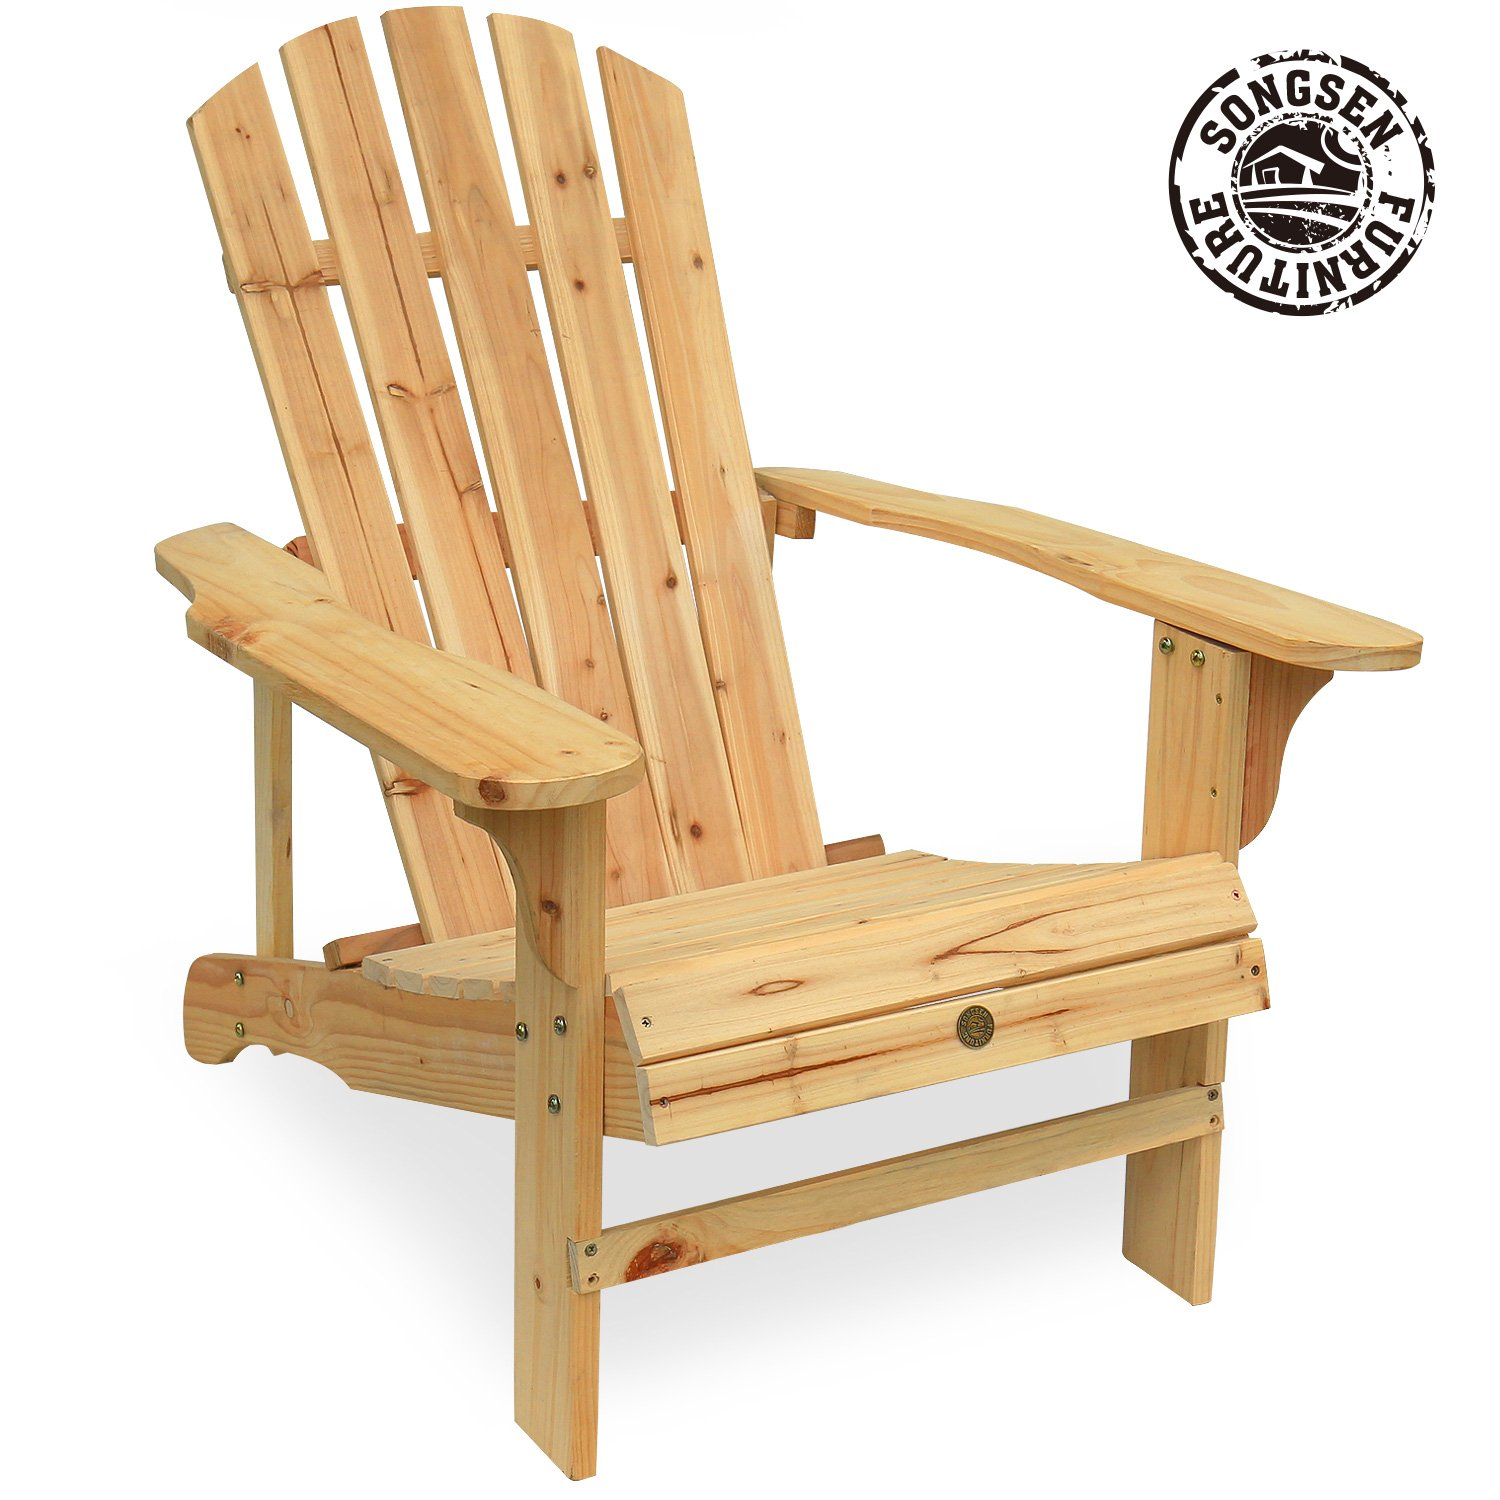 outdoor wood chairs lkiql lounge dp com deck log adirondack amazon patio songsen chair natural garden furniture